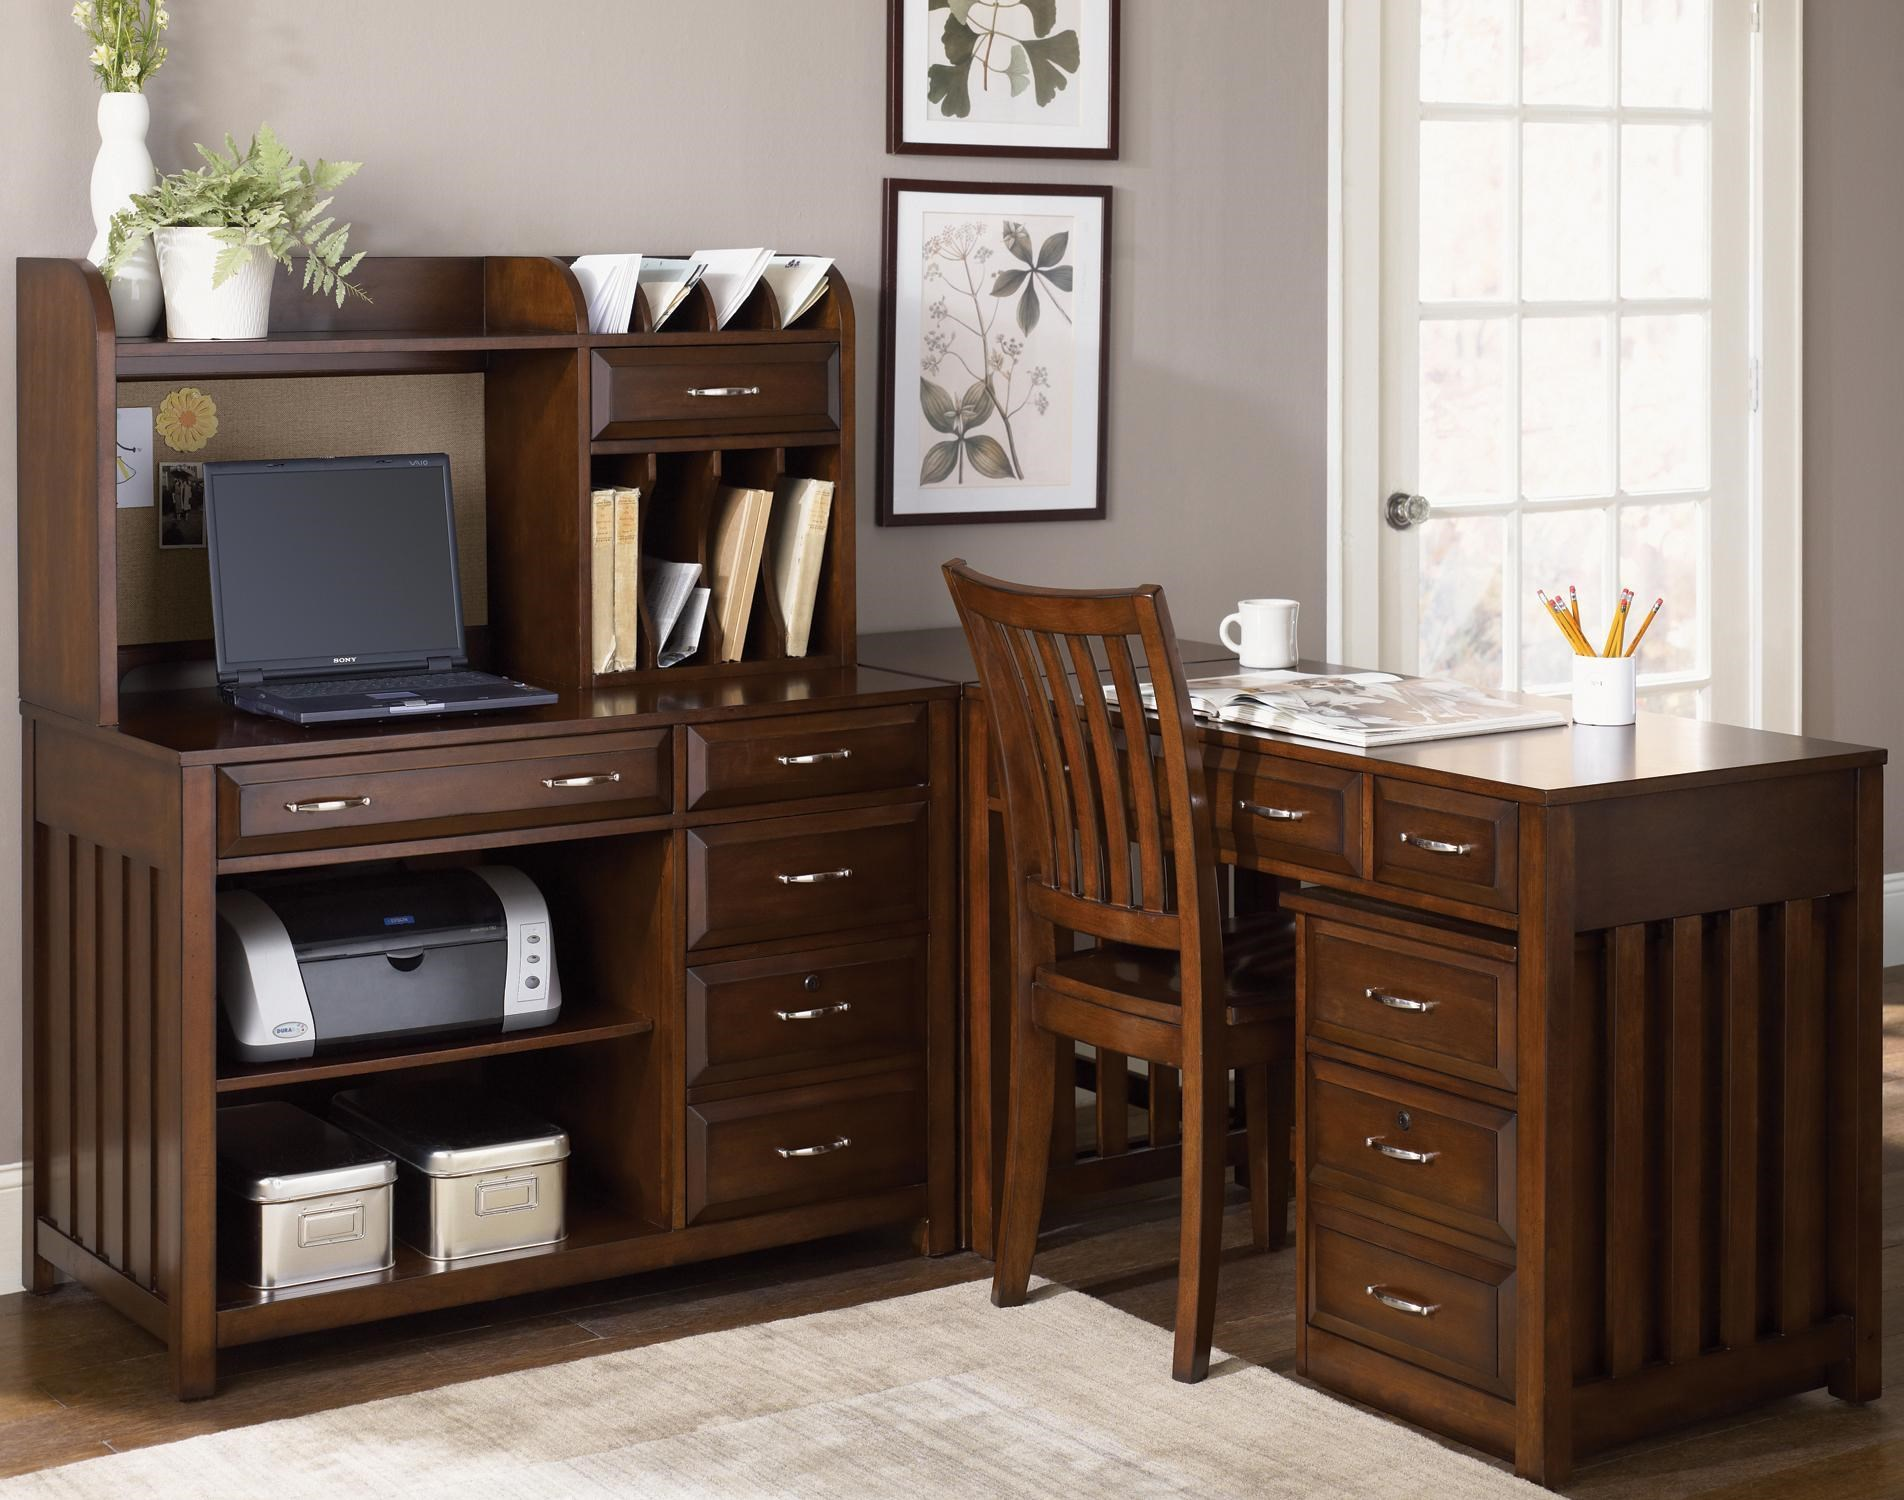 Desk With File Cabinet Hampton Bay 5 Piece L Shaped Desk And File Cabinet Unit By Liberty Furniture At Wayside Furniture